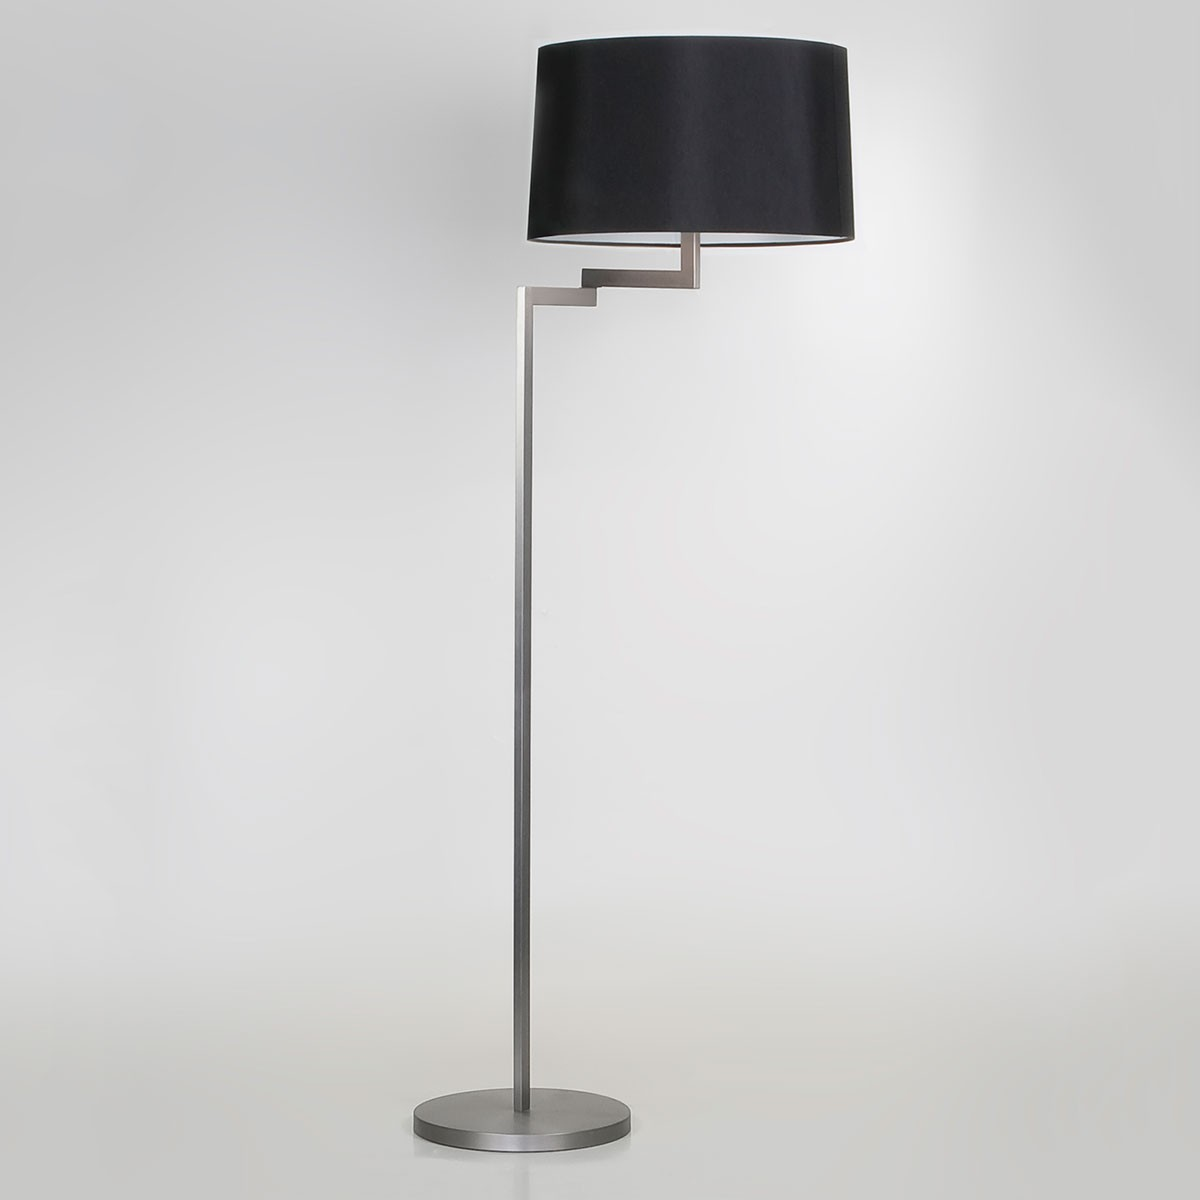 Astro momo floor brushed stainless steel lamp at uk